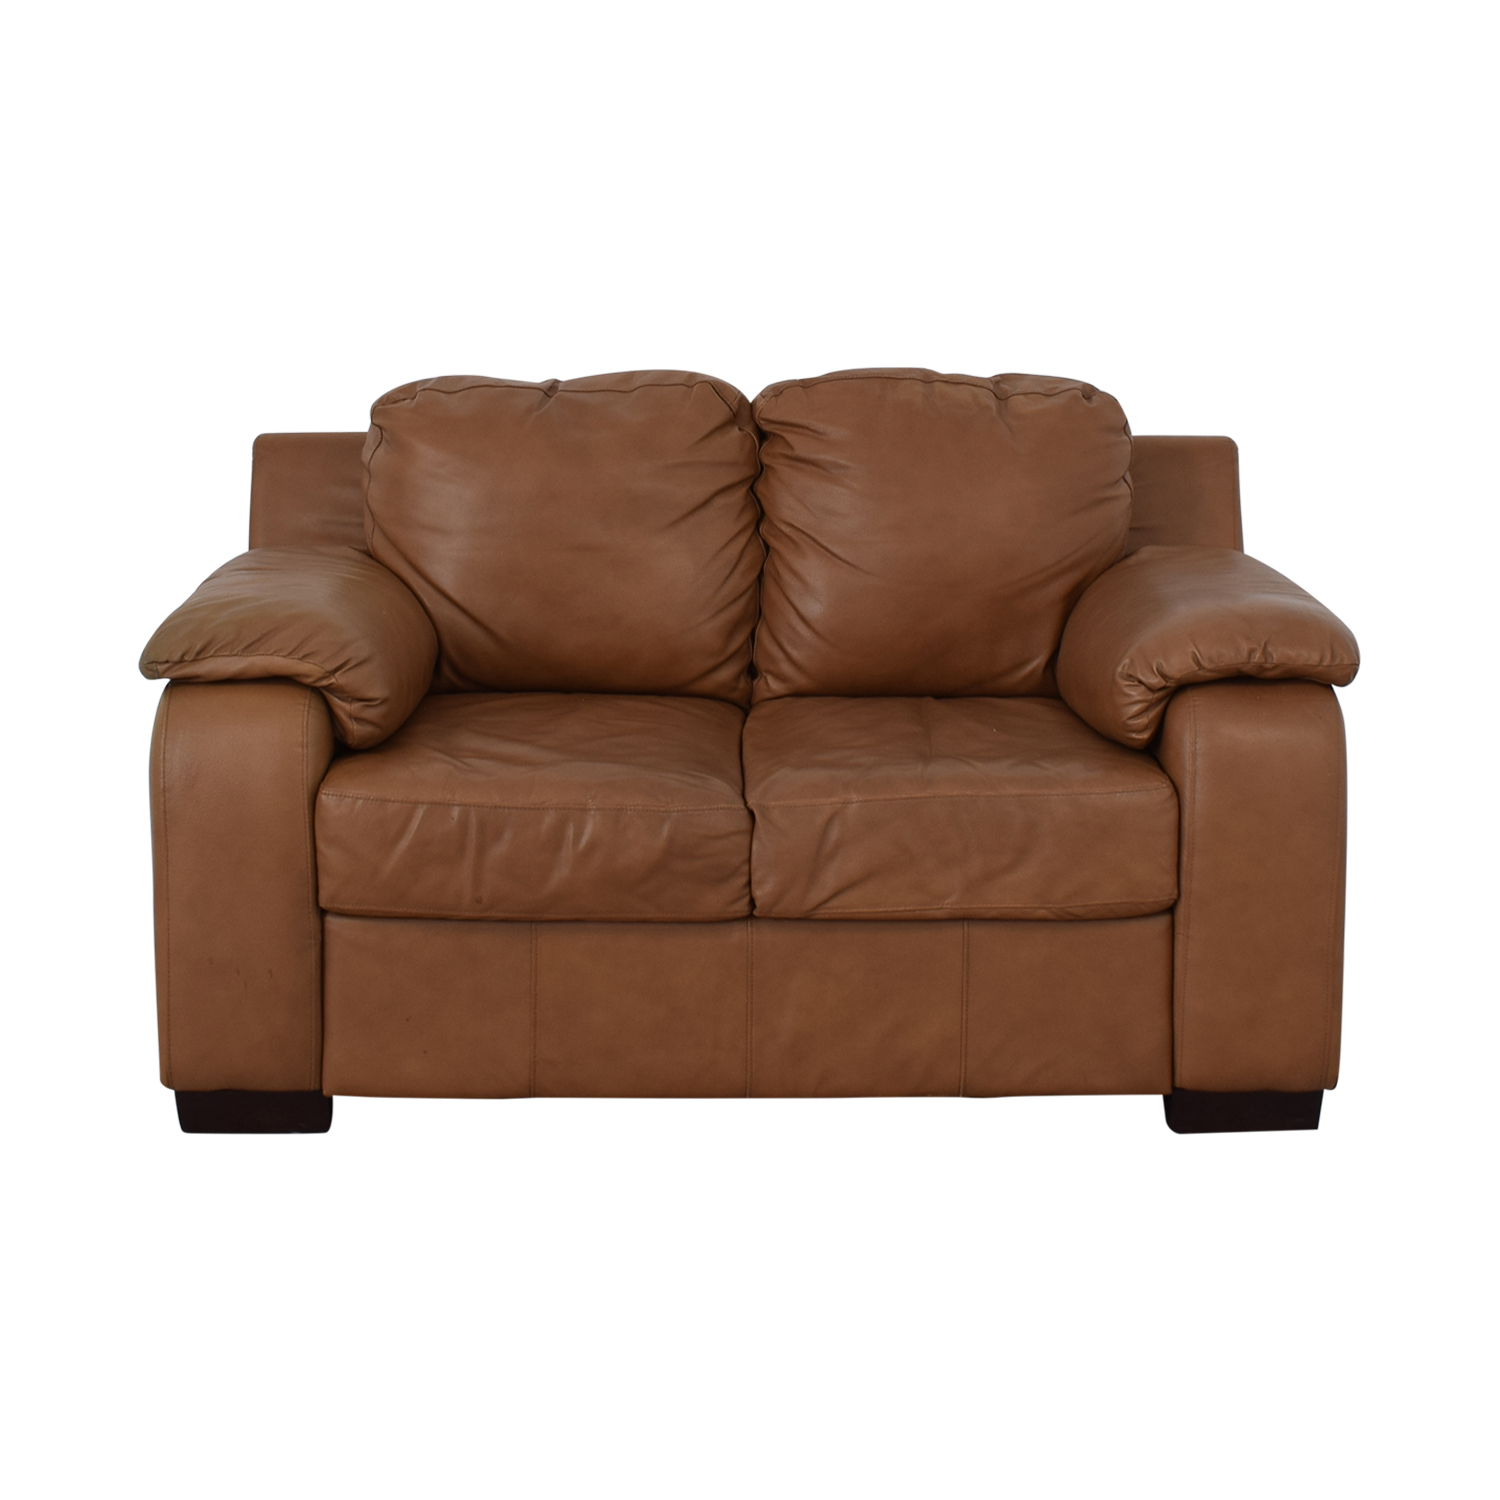 Jennifer Furniture Jennifer Furniture Cognac Two-Cushion Loveseat price